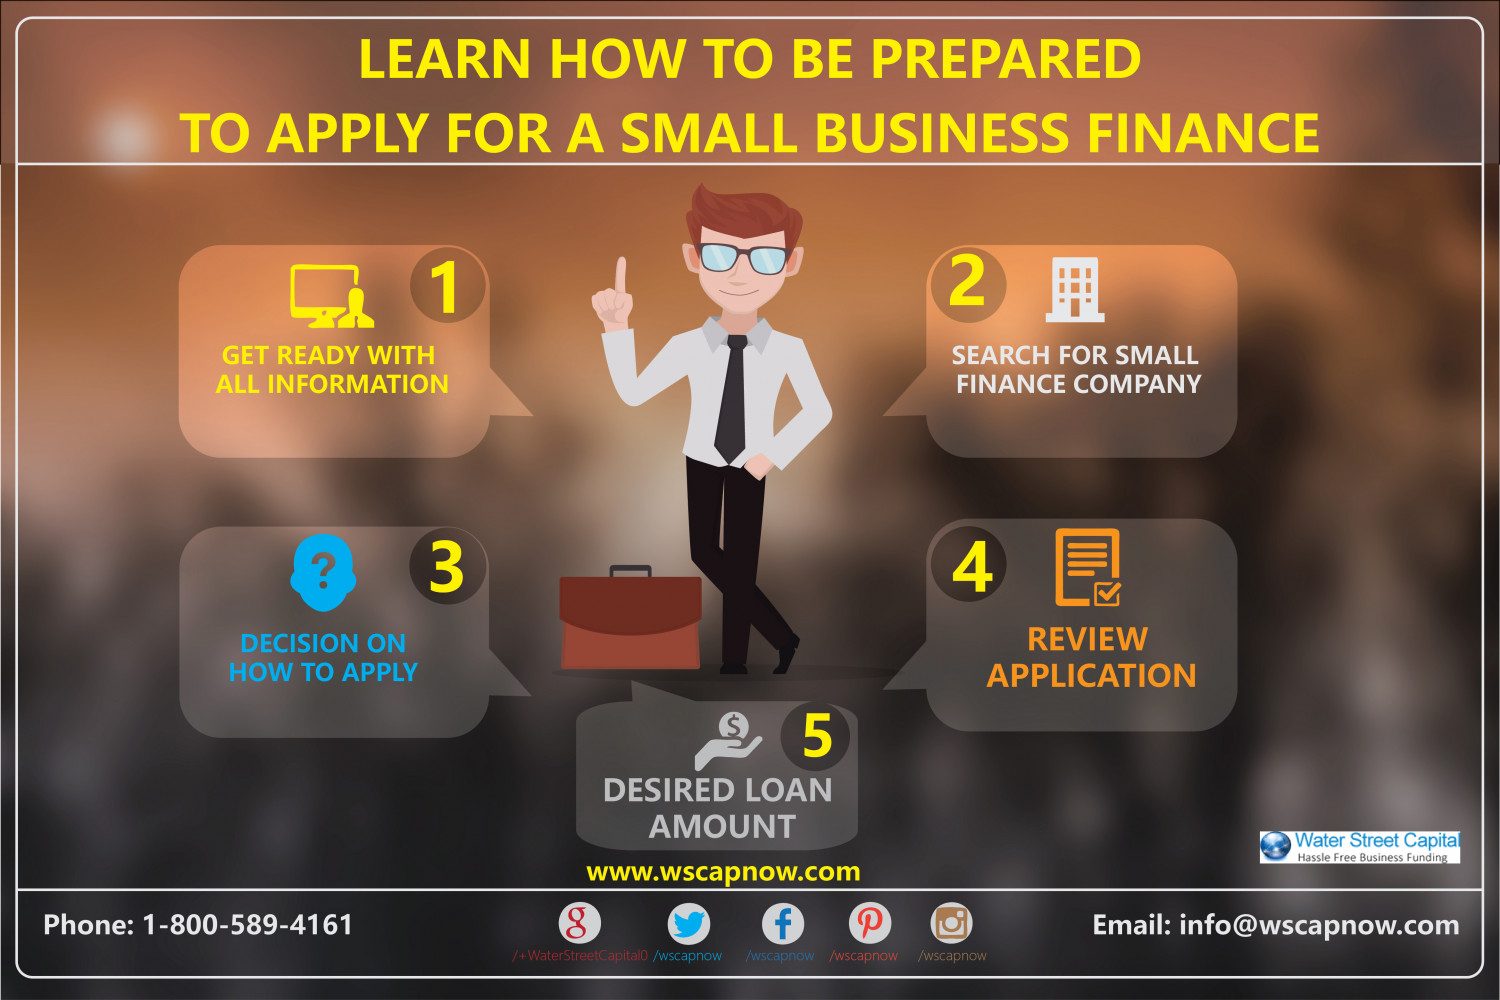 Learn How to be Prepared to Apply for Small Business Finance Infographic